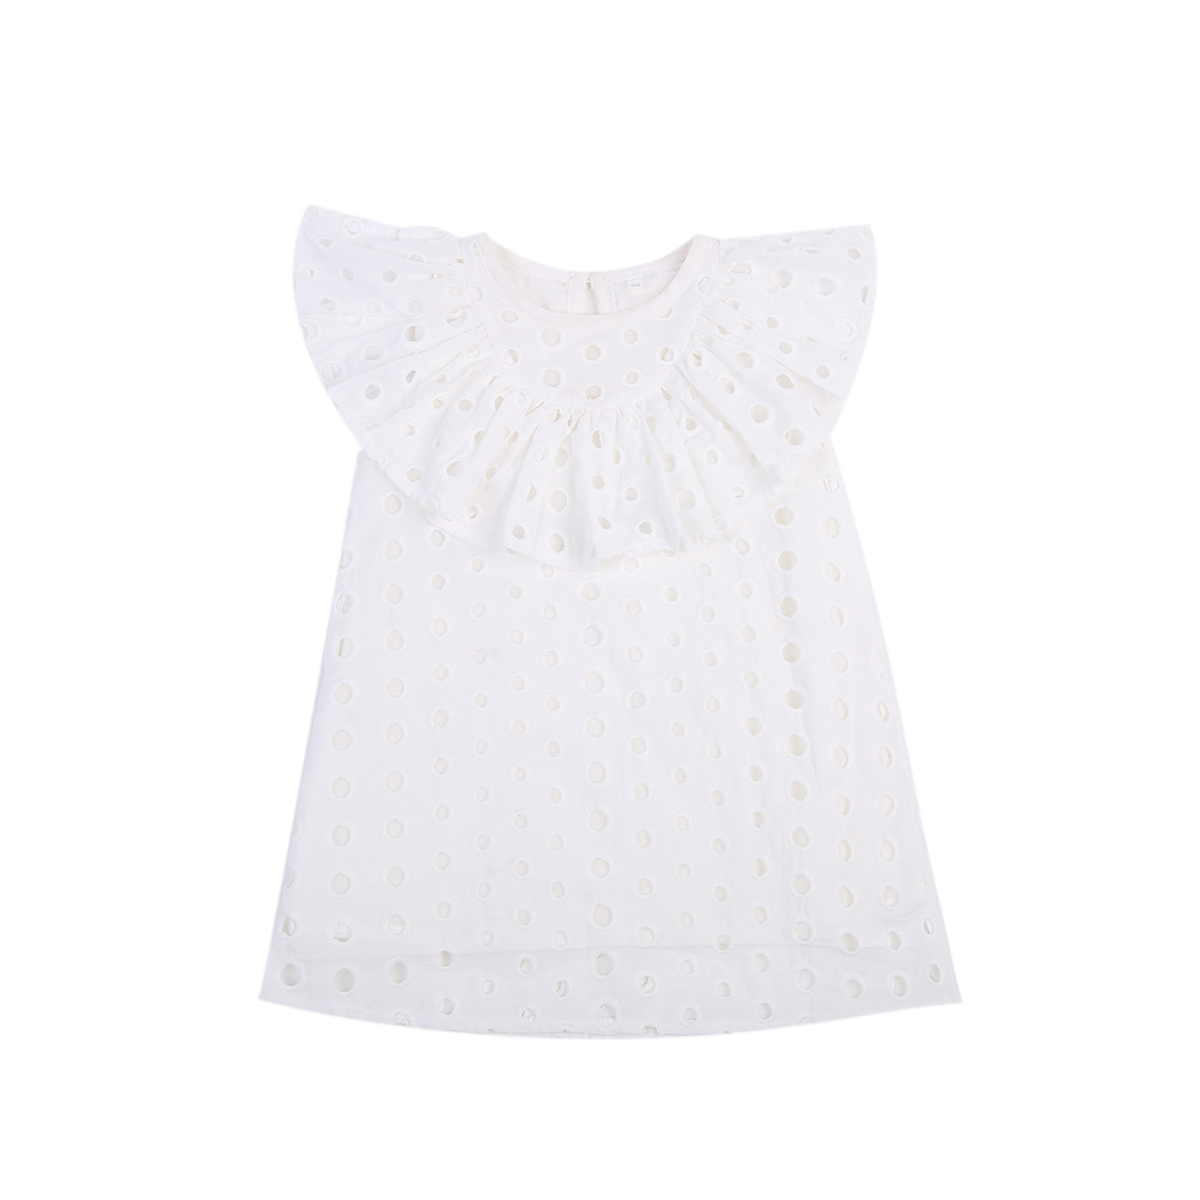 Pretty Toddler Kids Baby Girls Hollow Out Lace Party Mini Sleeveless O-Neck Dress Summer White Sundress Clothes 0-4Y girls tshirt brand hollow sleeveless o neck baby girl shorts solid elastic waist 2 pieces kids clothes girls 2792w